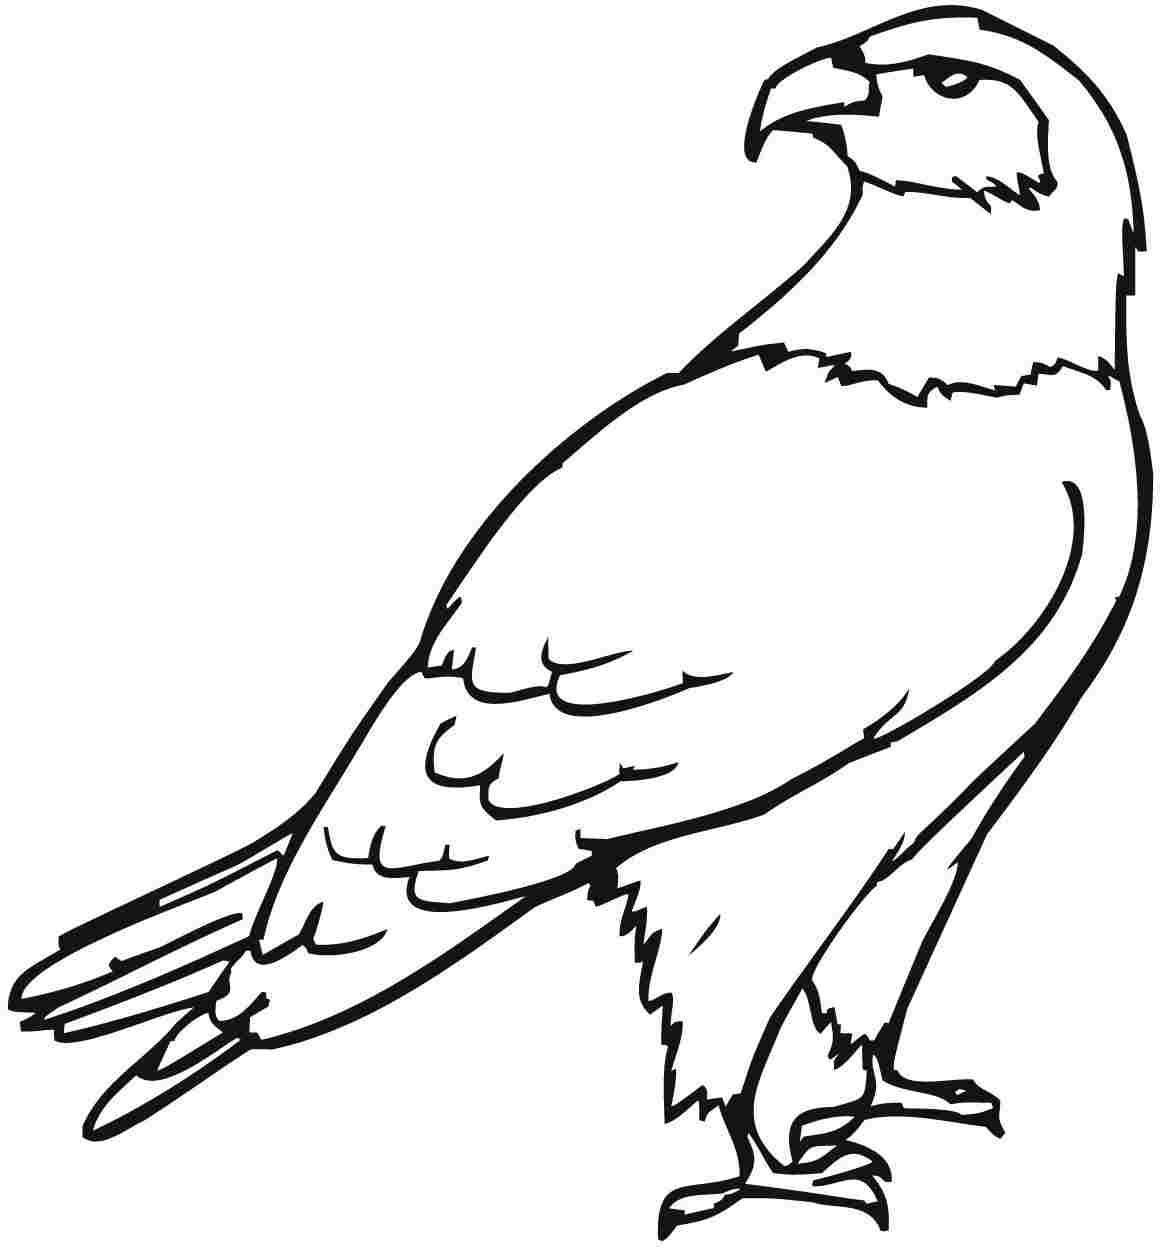 Drawn steller's sea eagle outline Coloring Eagle Download coloring coloring